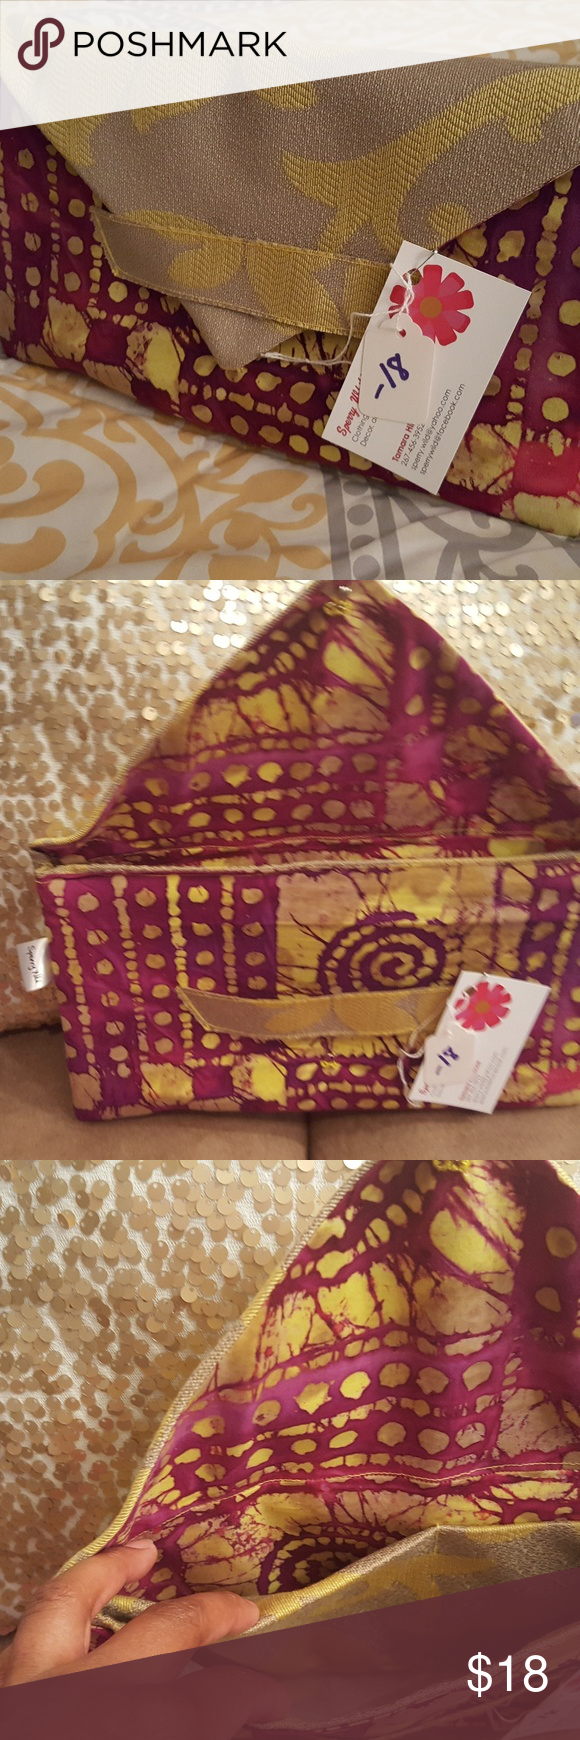 Stylish African and flower print clutch Clutch is made with Cotton african print fabric and mixed with yellow flower print which is adorable. Closes in the front can be carried through handle on front. 3 inside pockets for phone and money, credit cards. Great for Mother's day.  Made by me. New never used. Bags Clutches & Wristlets